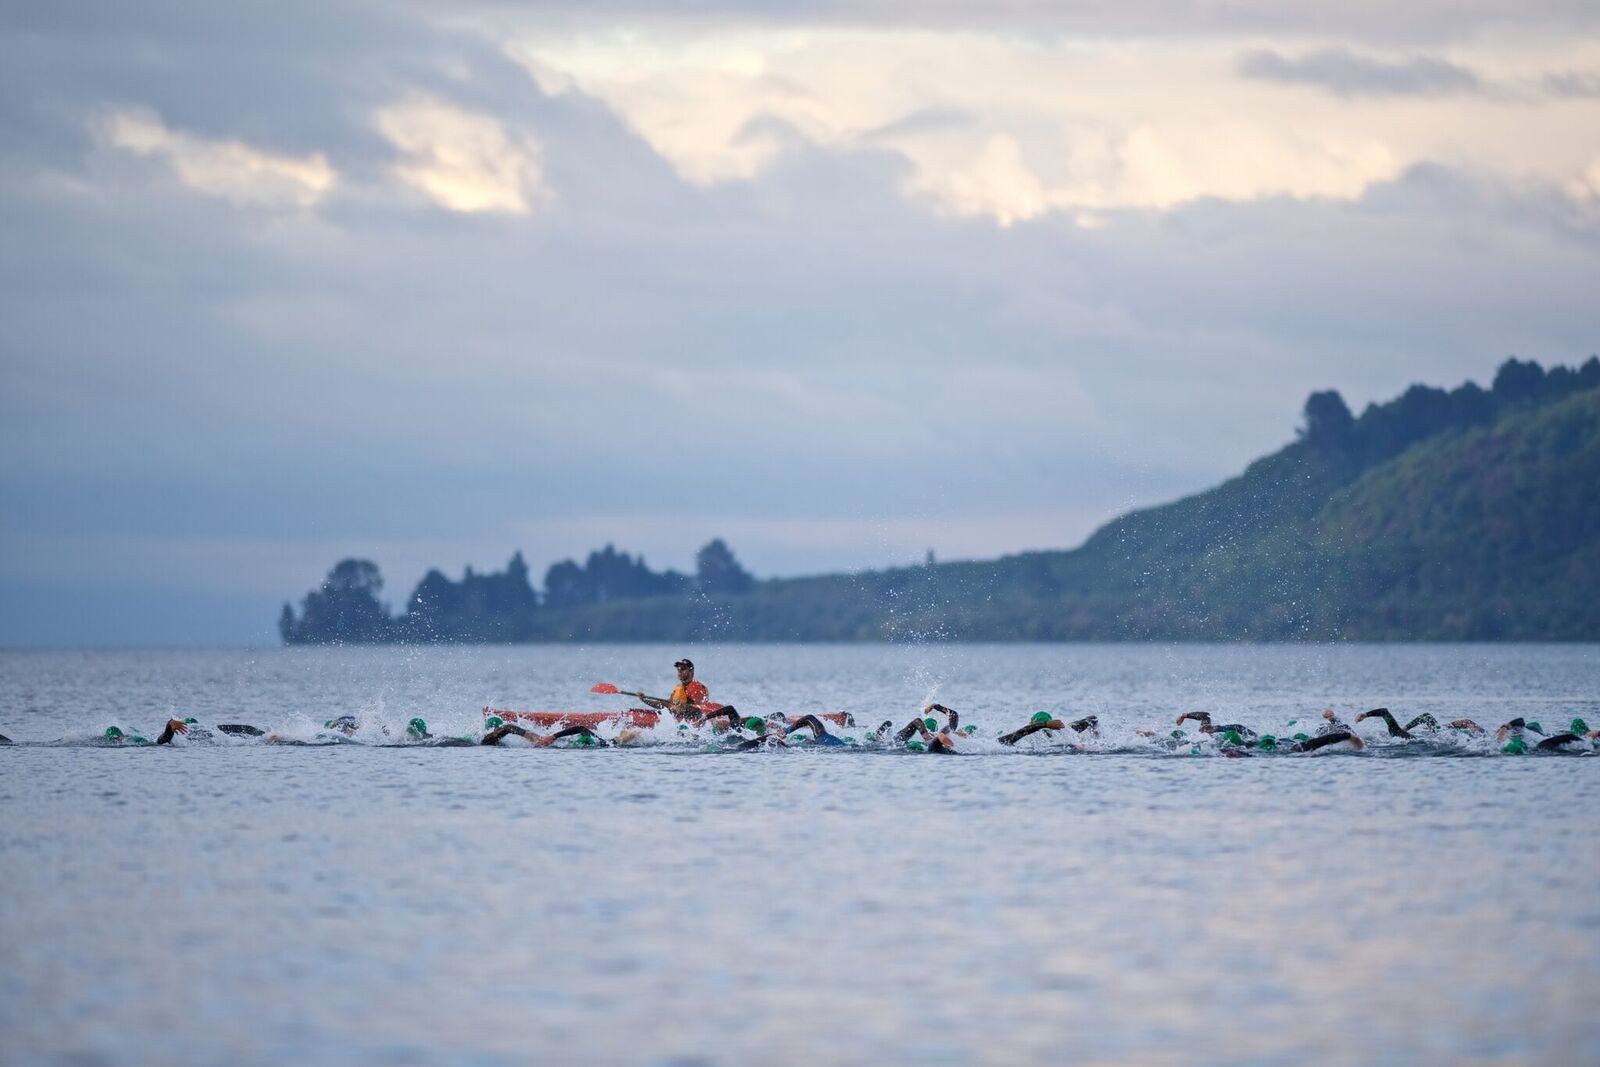 taupo-ironman-start